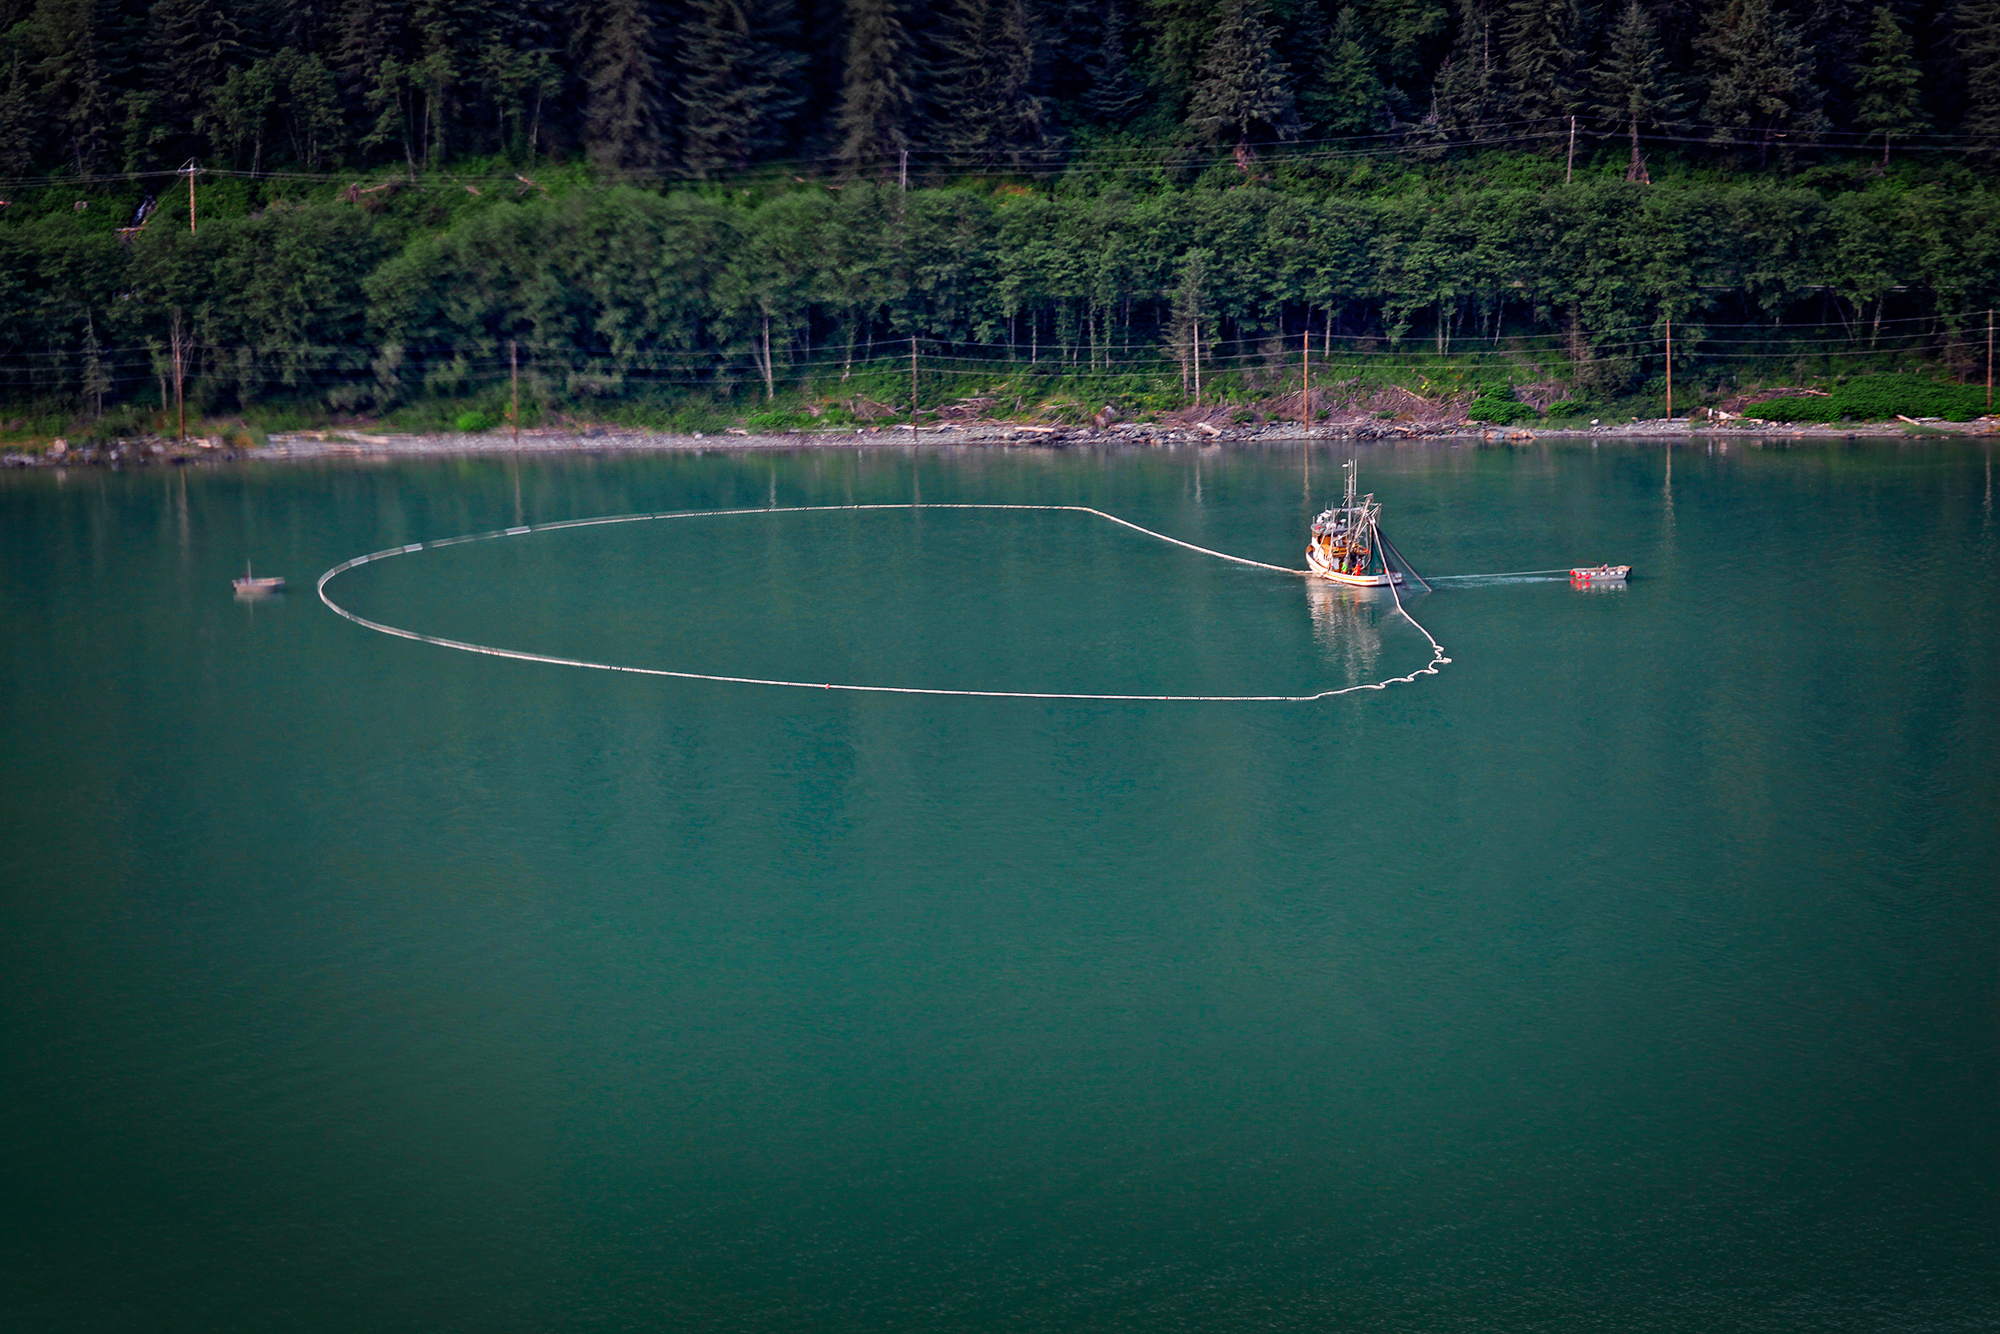 Here, a purse seining operation sets its nets in search of salmon. Purse seiners are responsible for large hauls of fish in Alaska's southeast, with catches from a single net set as high as a thousand fish or more (photo: Earl Harper).